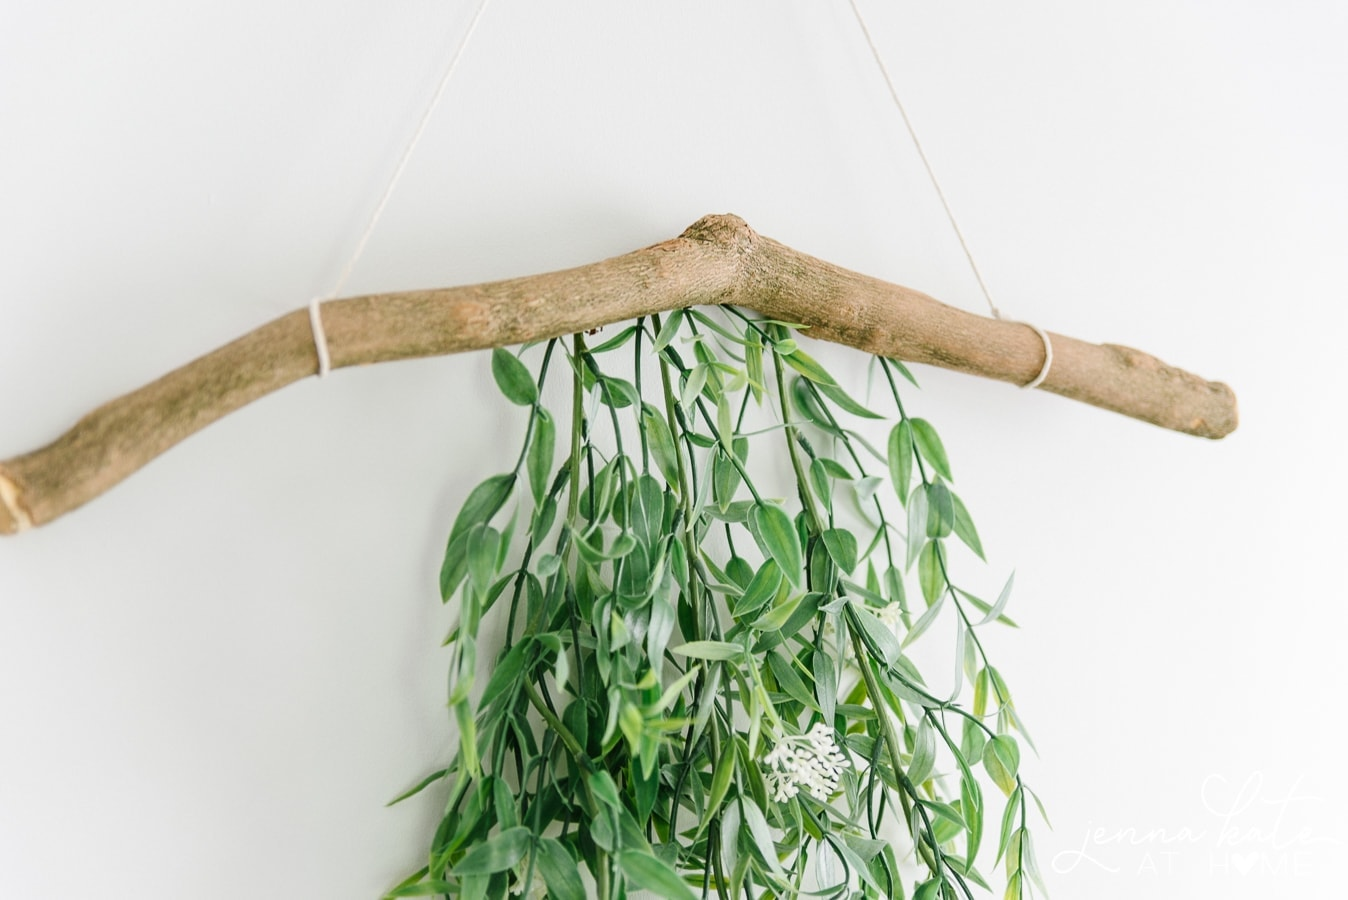 Branch with green foliage and twine, hanging on wall